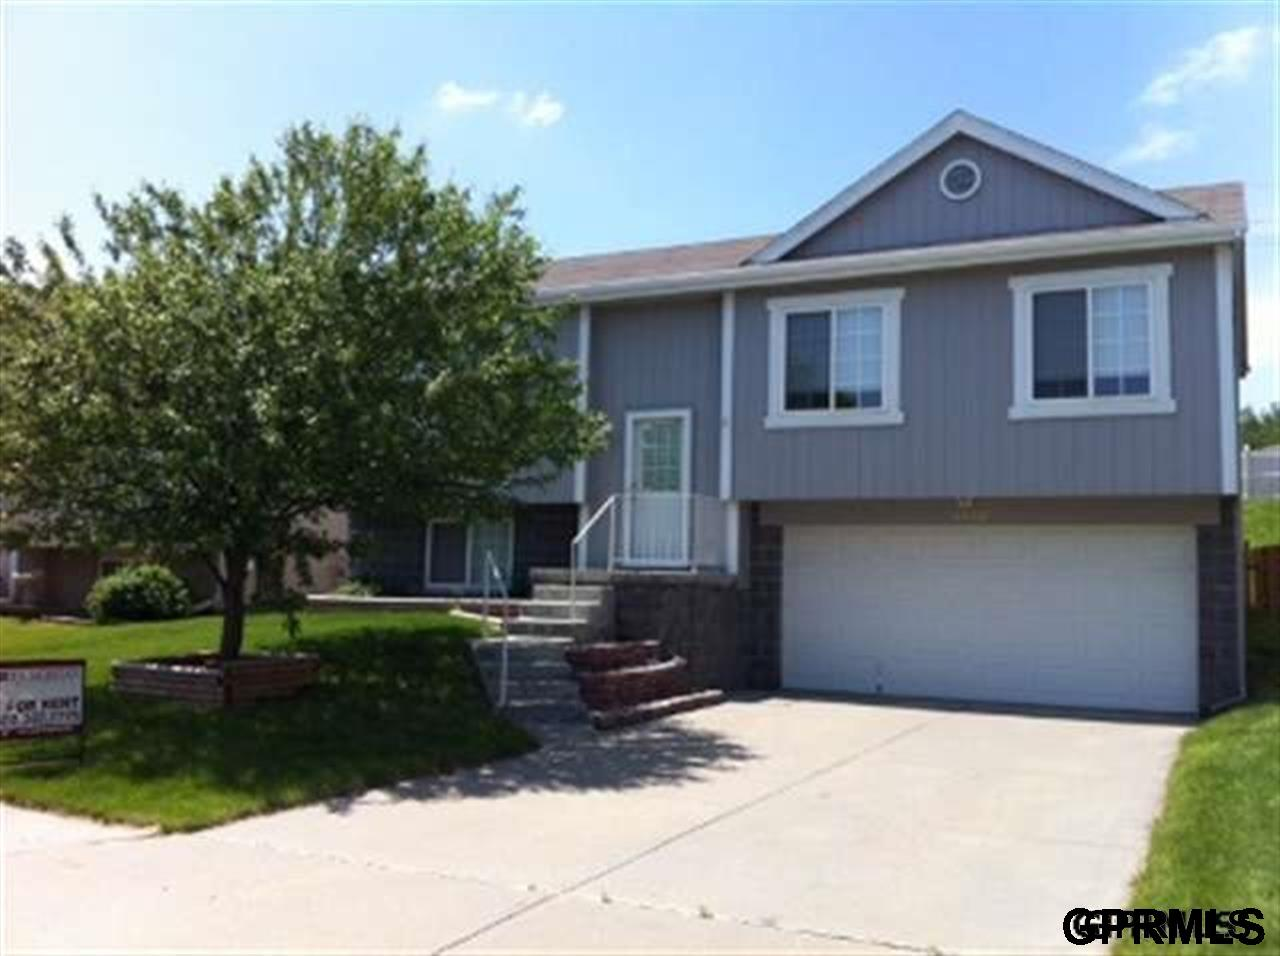 Rental Homes for Rent, ListingId:35807536, location: 5402 S 191st Omaha 68135